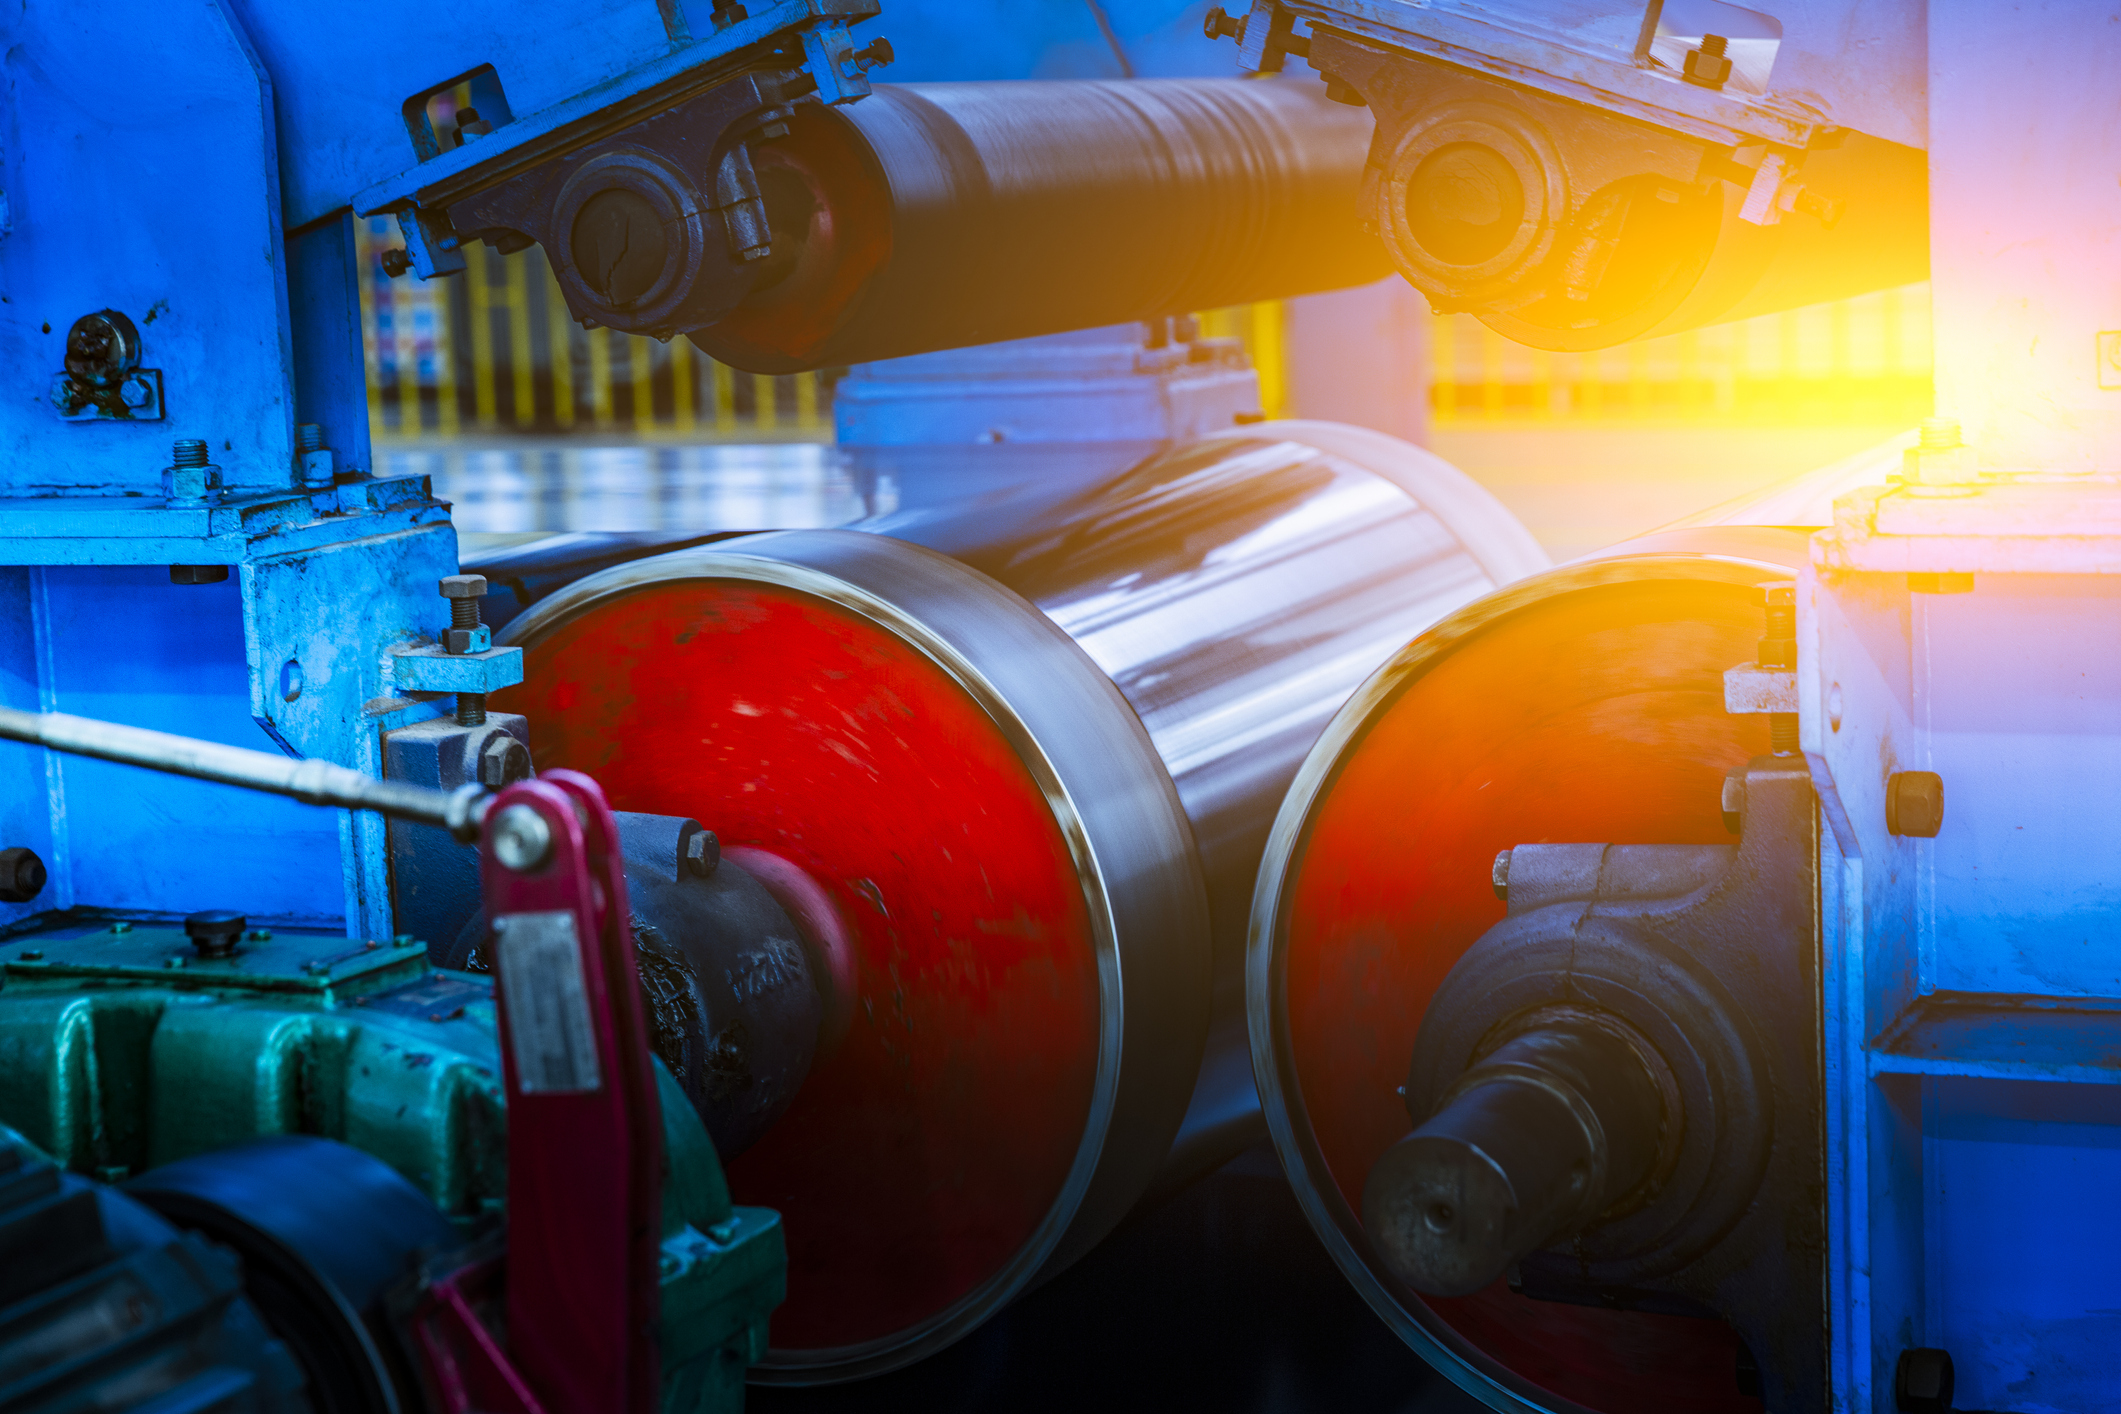 7 Ways to Pitch New Metal Manufacturing Processes to Your Boss